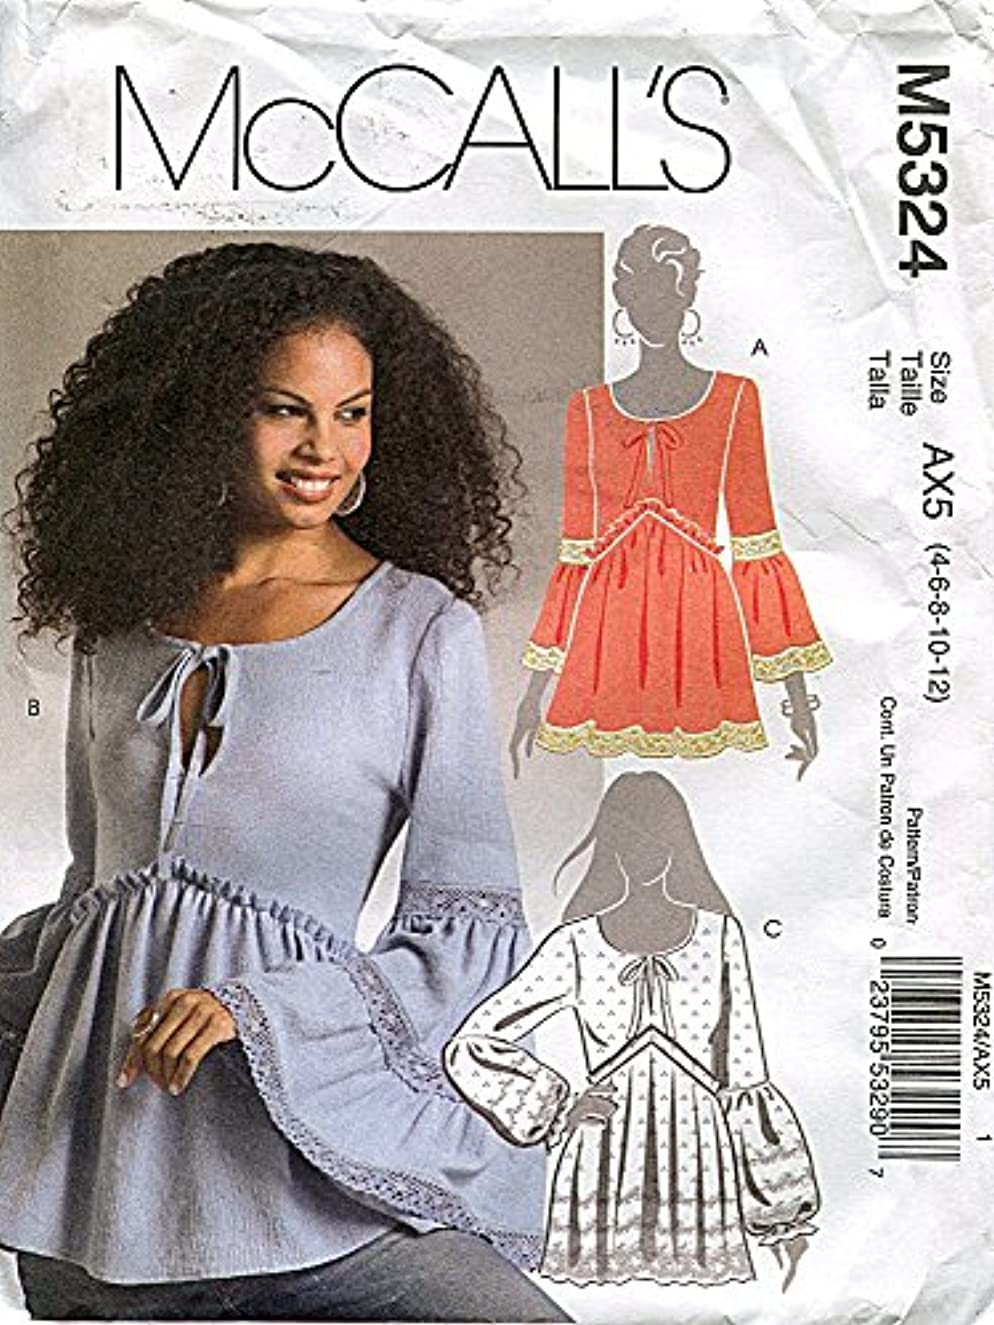 McCall's Pattern 5324 - Misses Tops - Size AX5 (4, 6, 8, 10,12)